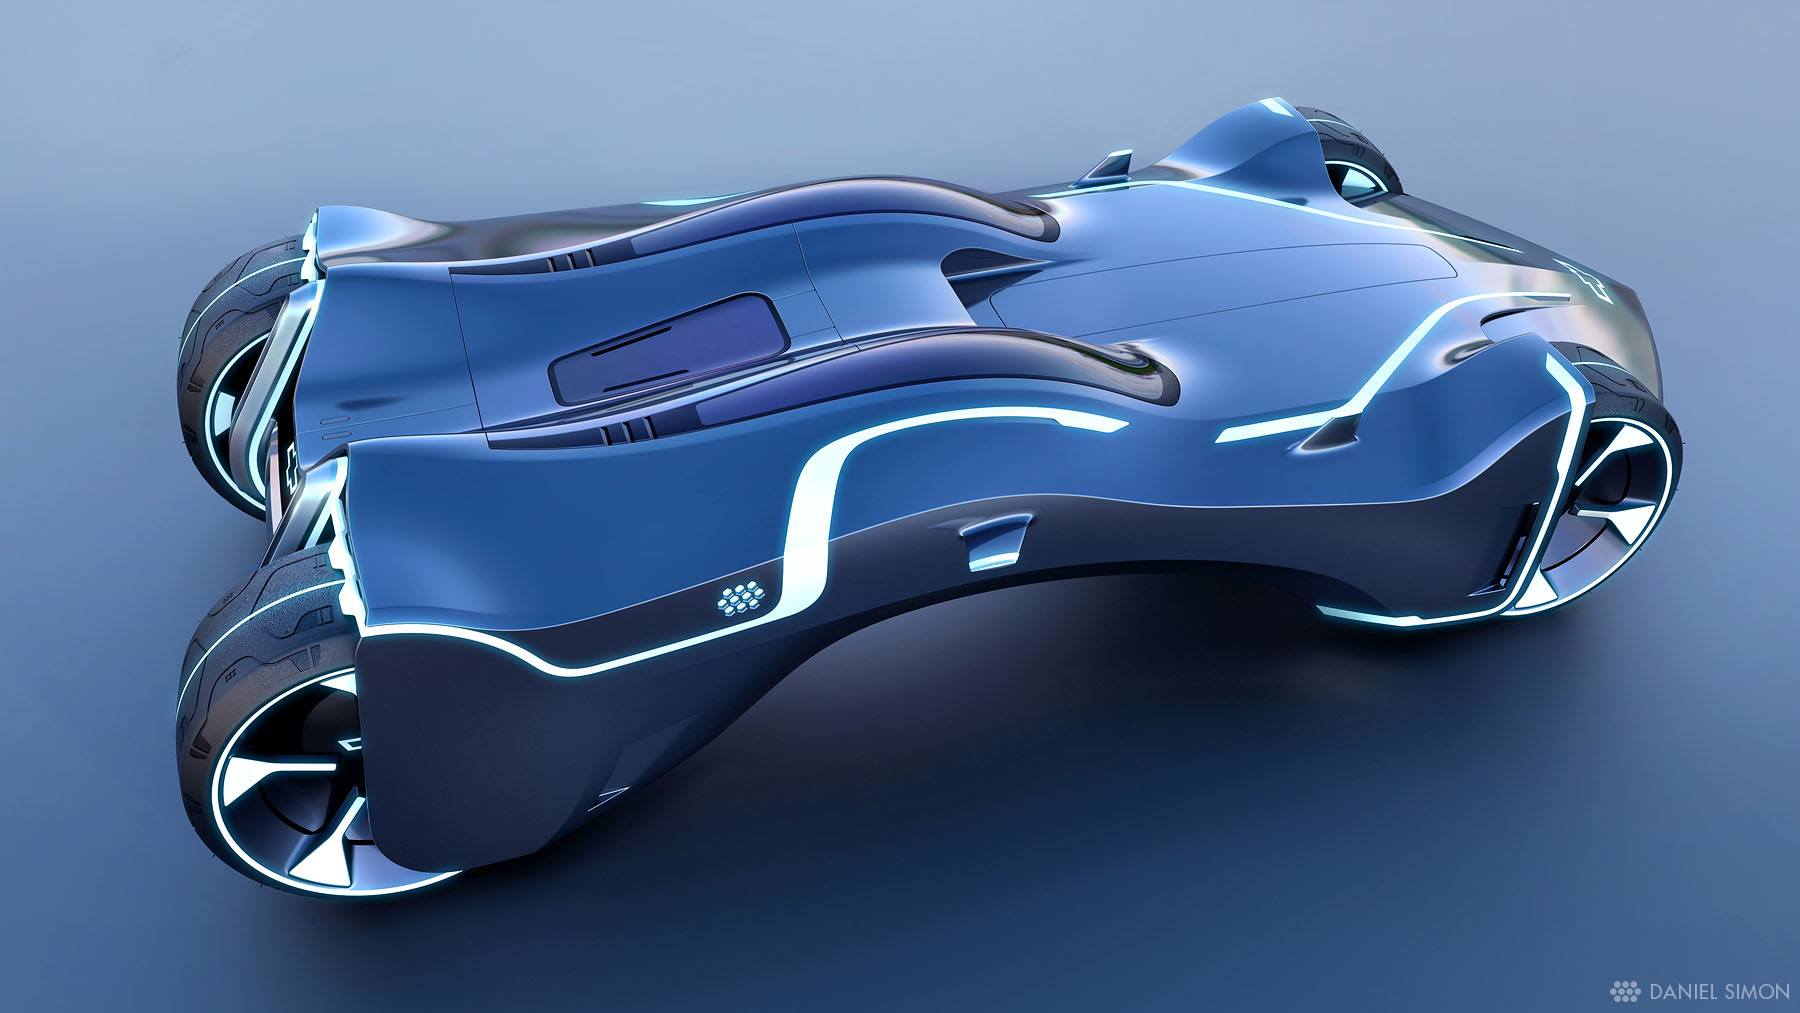 TRON Lightcycle Power Run Car Design by Daniel Simon